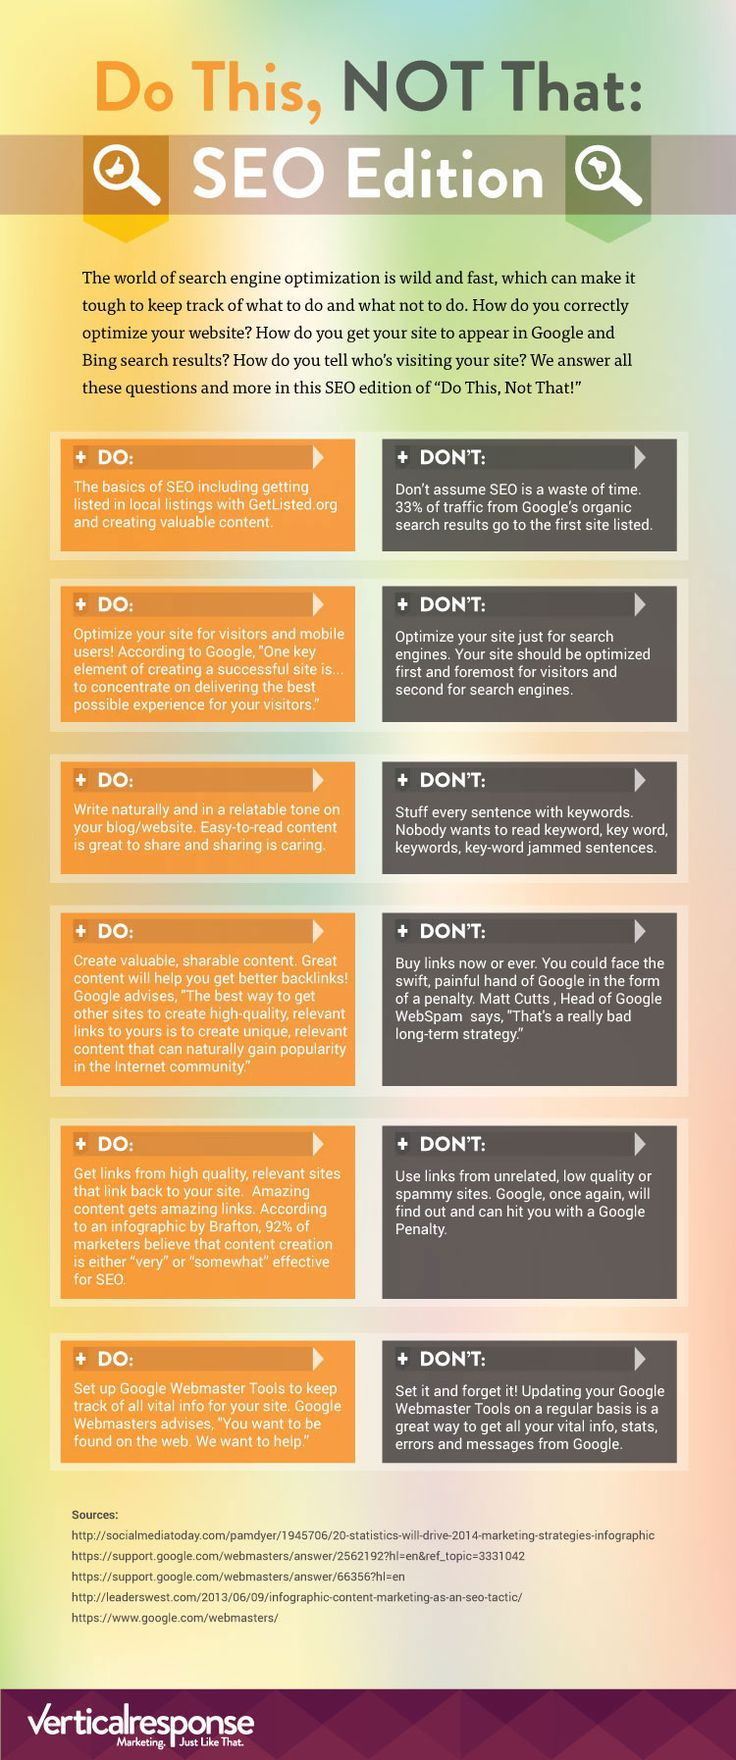 [INFOGRAPHIC] SEO: Do This, Not That: Local listings; Optimization; Content; Links; Webmaster tools; Details.